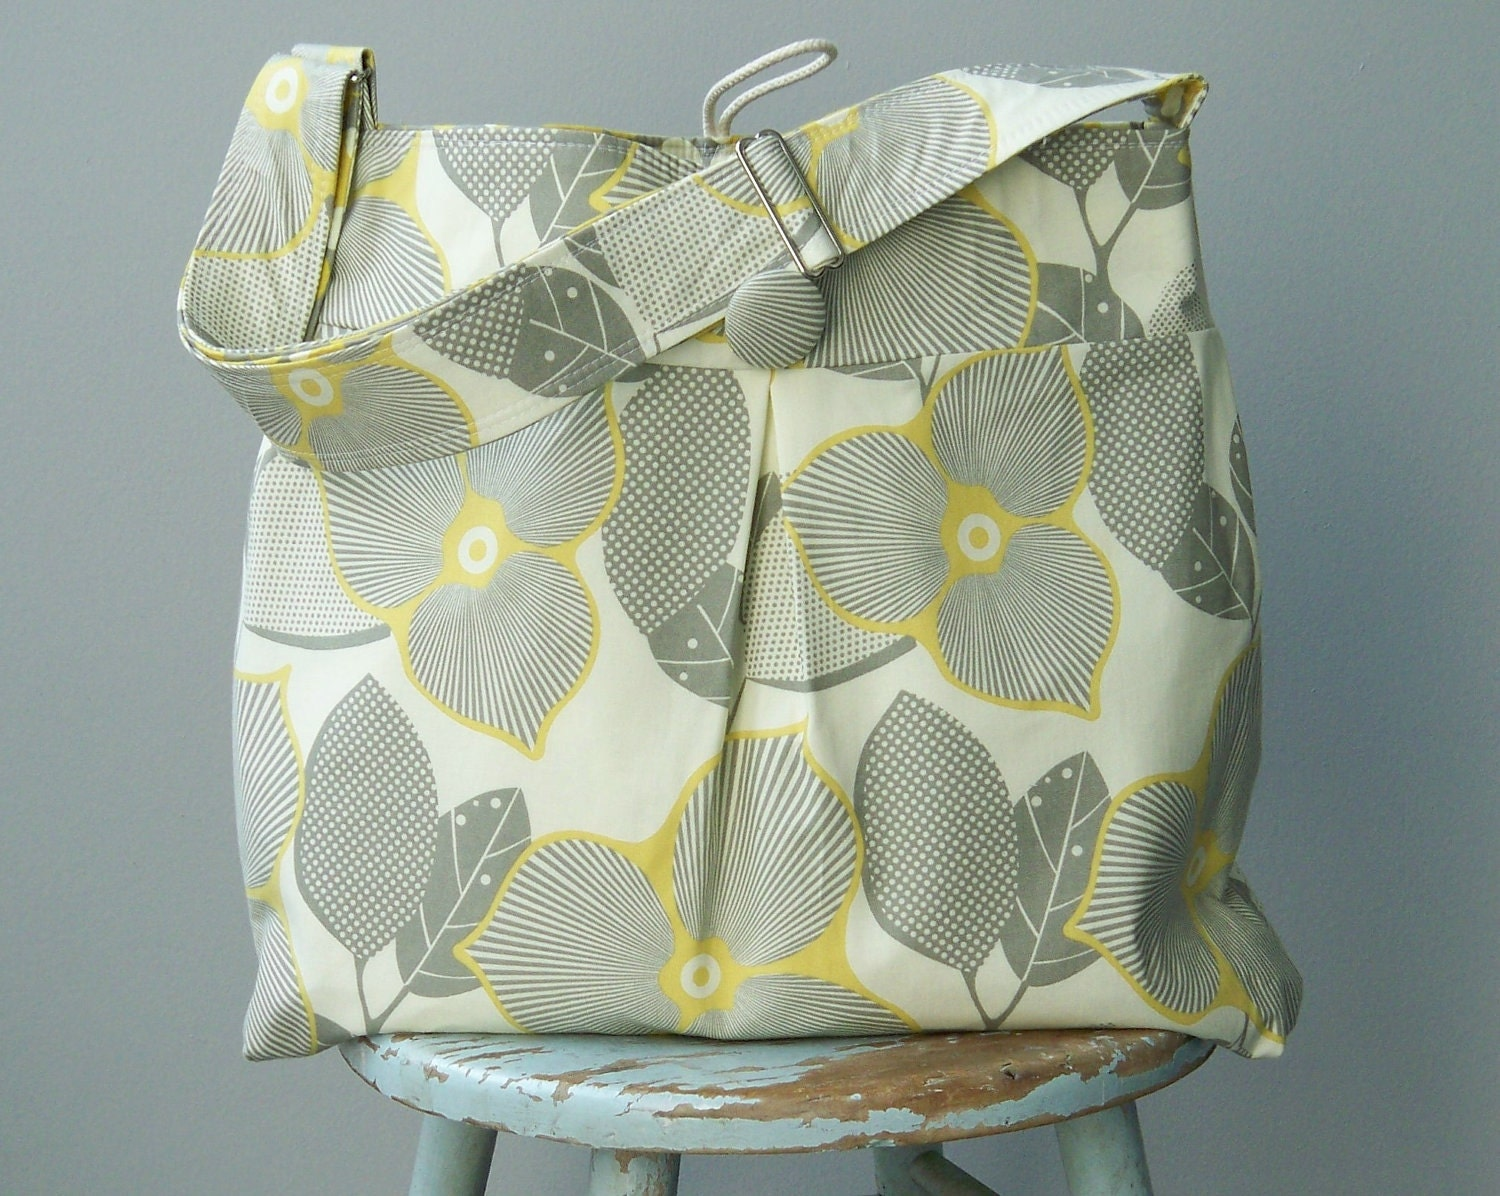 Blue Grey Diaper Bag Retro Scooters 6 Pockets by retrofied on Etsy